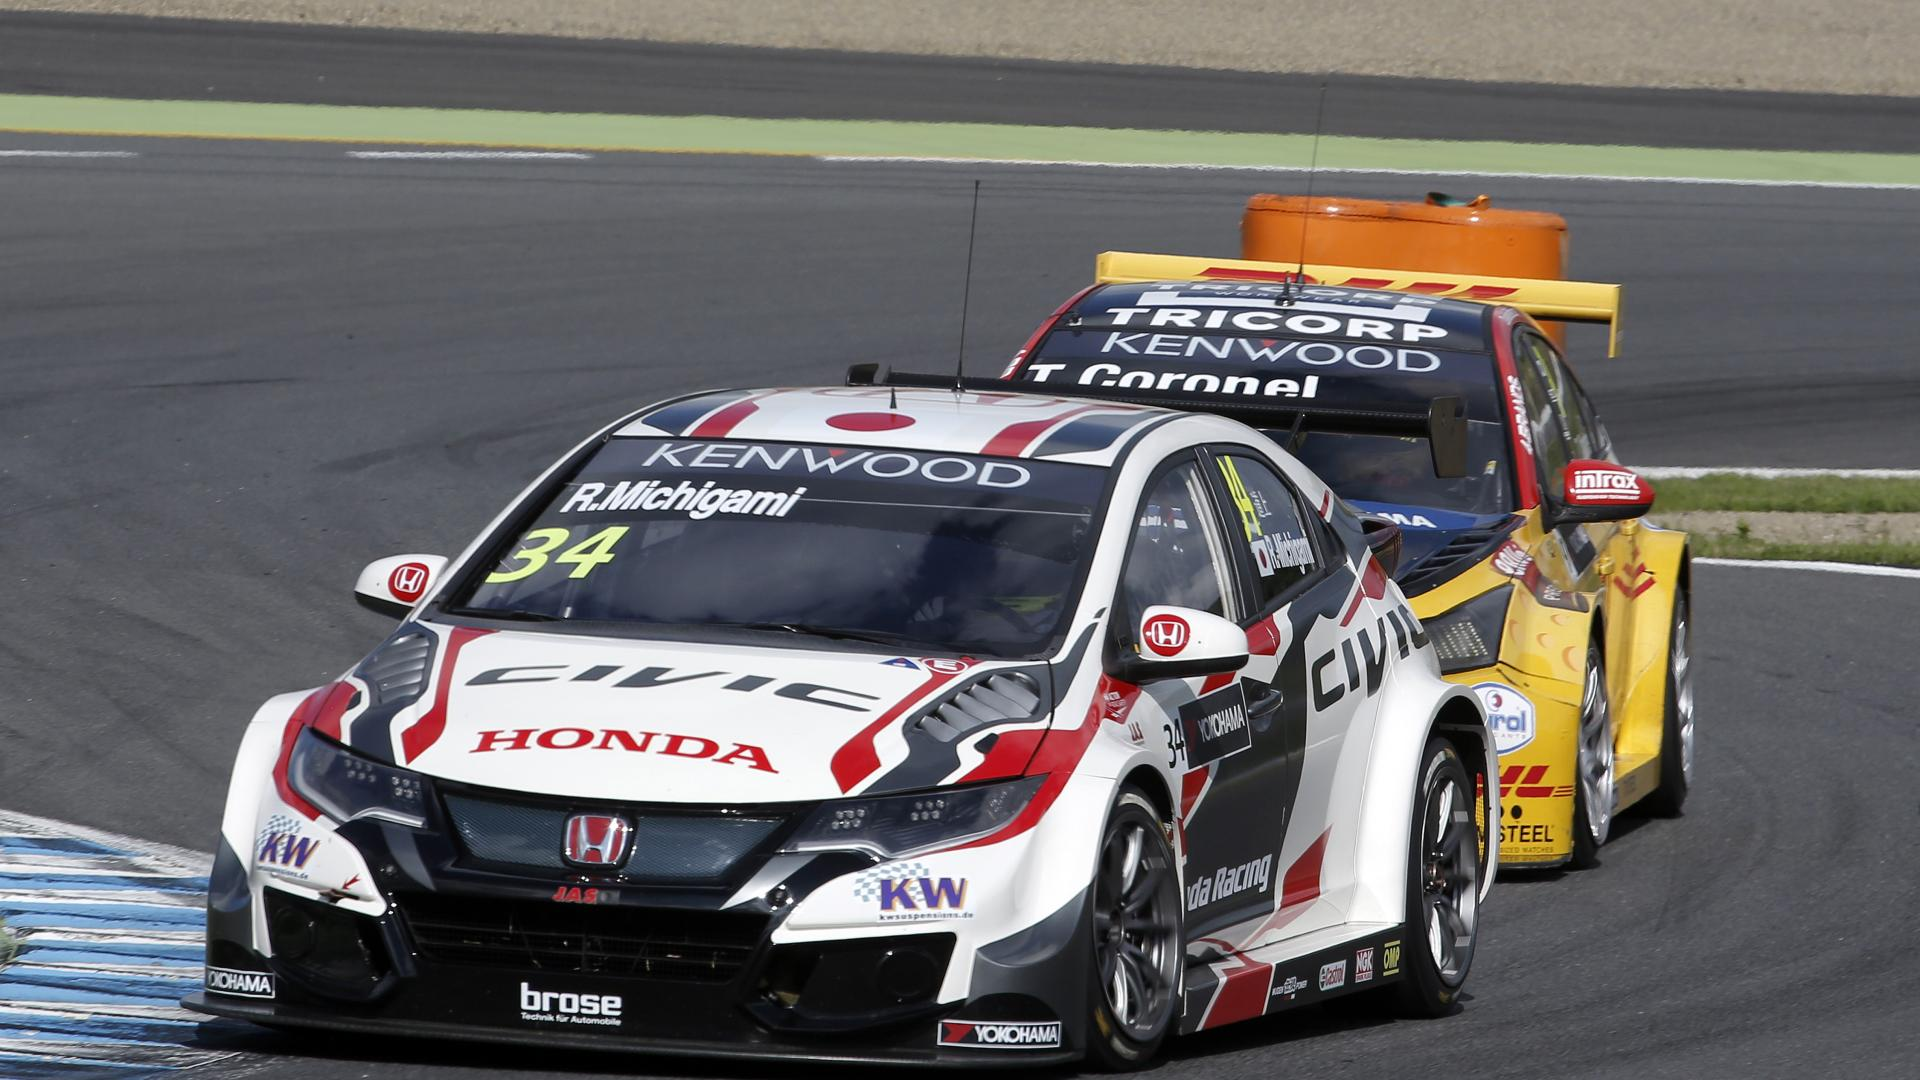 1920x1080 - WTCC Racing Wallpapers 38